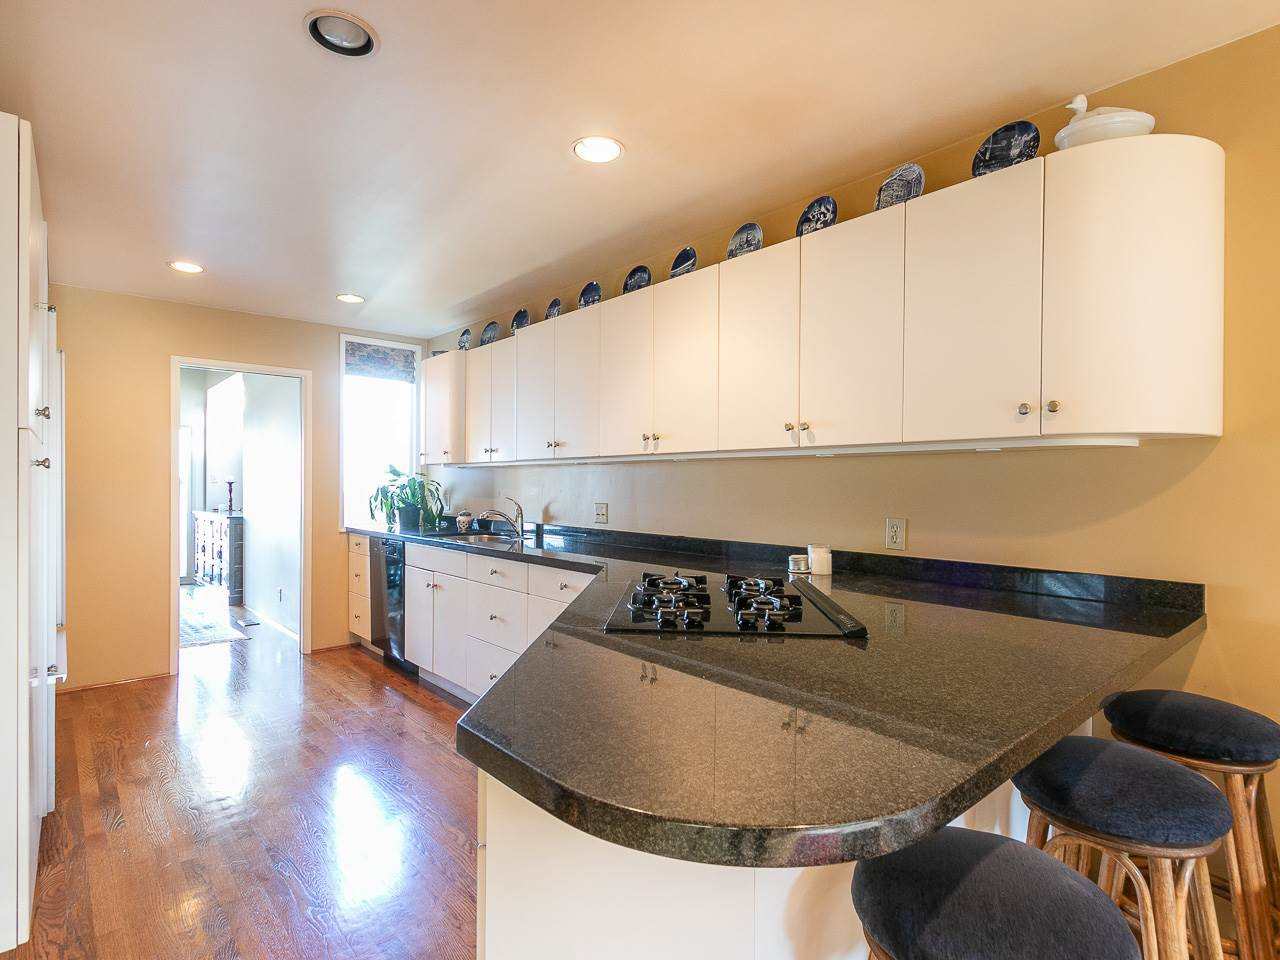 Photo 11: Photos: 2 1980 SASAMAT STREET in Vancouver: Point Grey Townhouse for sale (Vancouver West)  : MLS®# R2357115